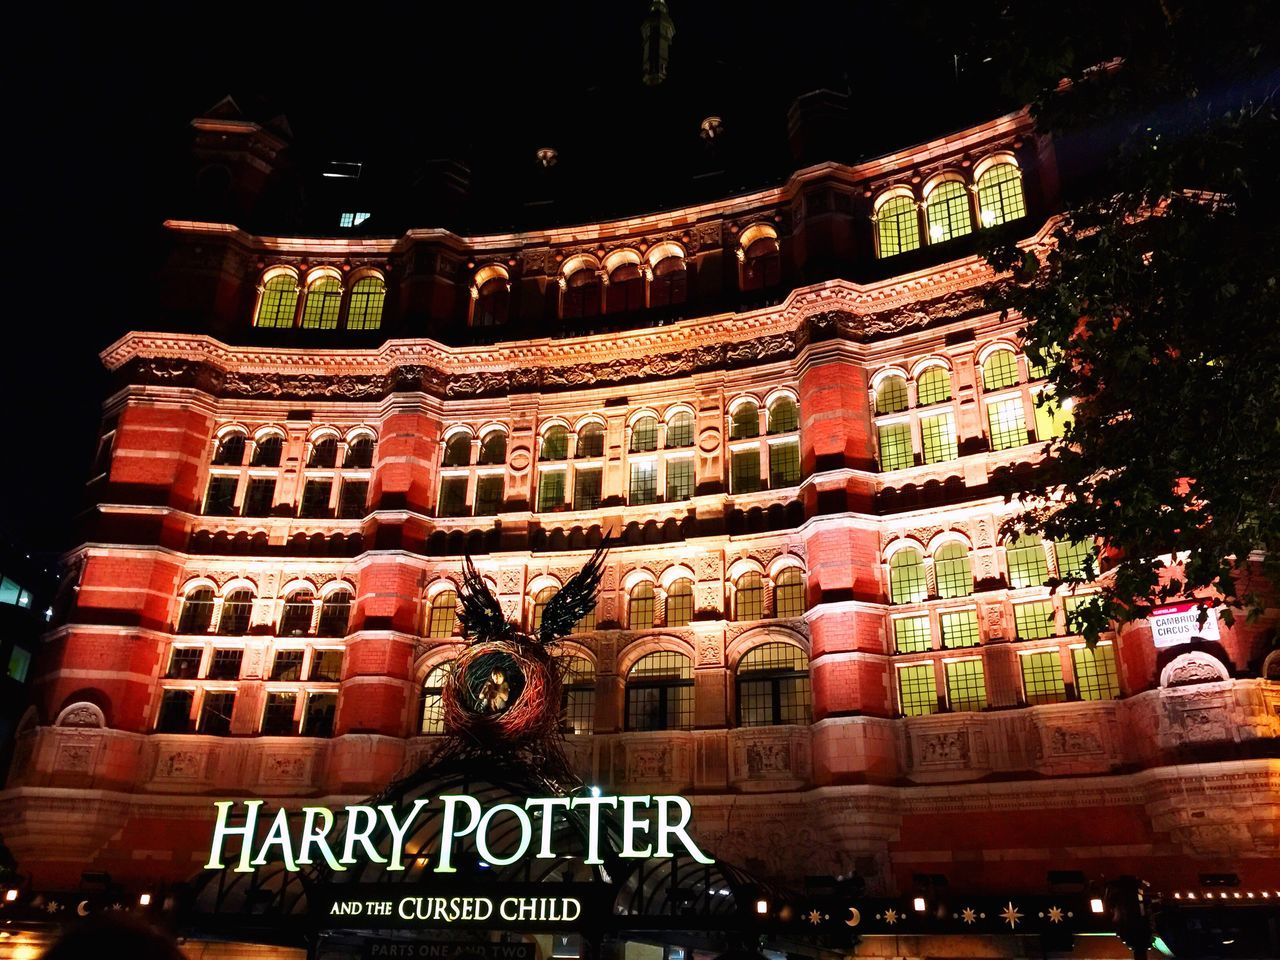 My Favorite Place Palace Theatre  Architecture London Architecture London Life London Night Harrypotter Harrypotterfan Harry Potter And The Cursed Child